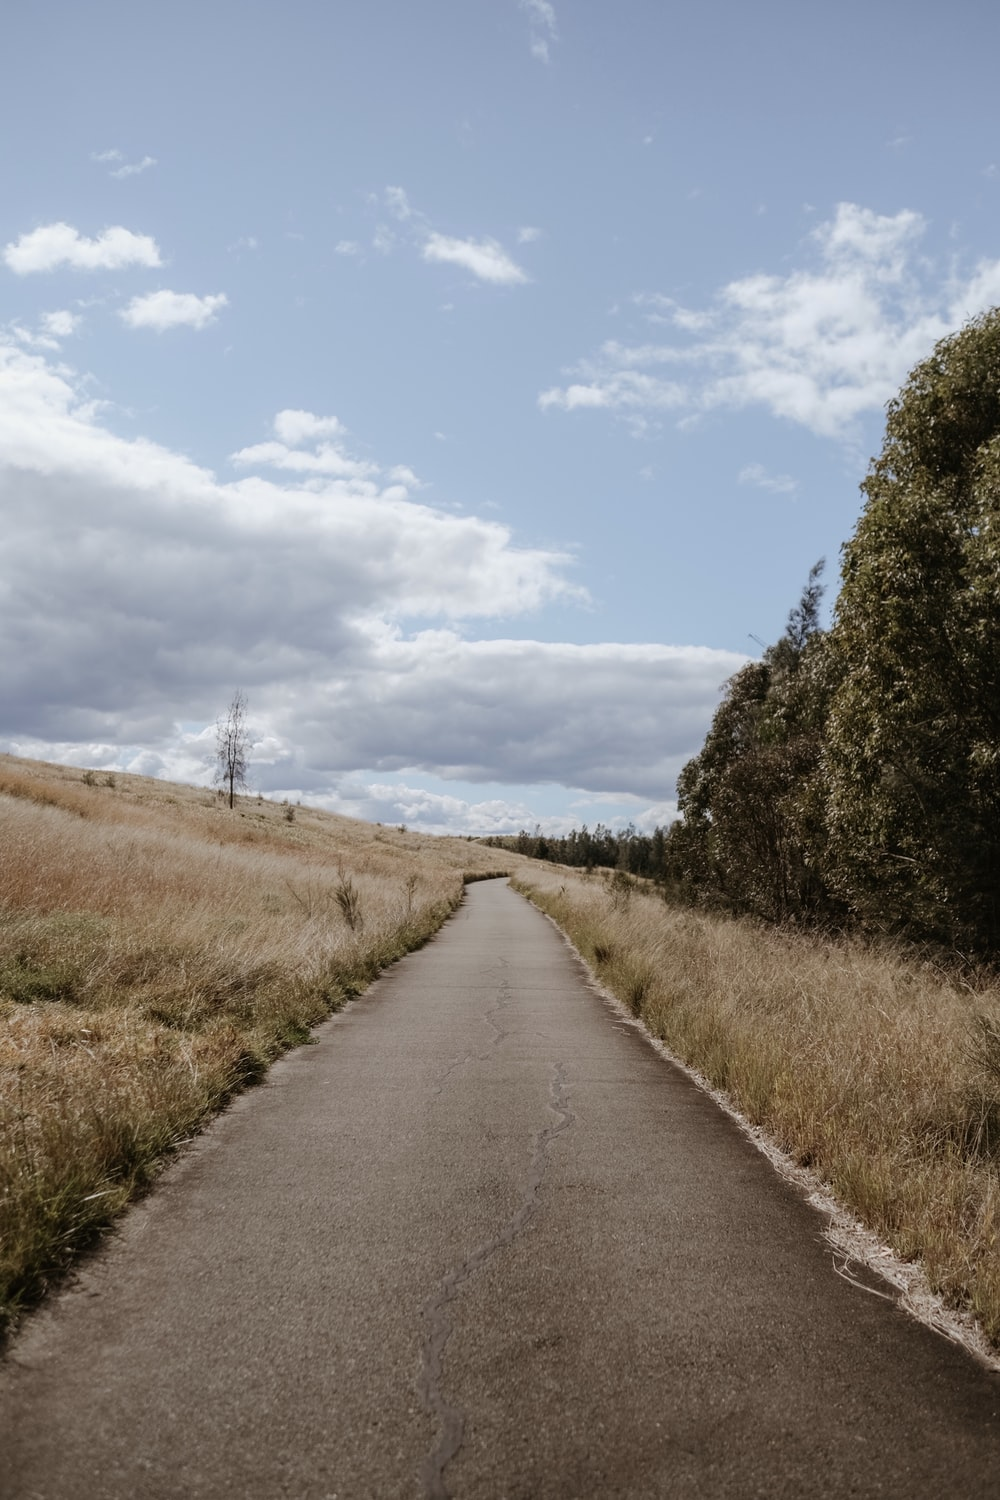 gray concrete road between green grass field under blue sky during daytime